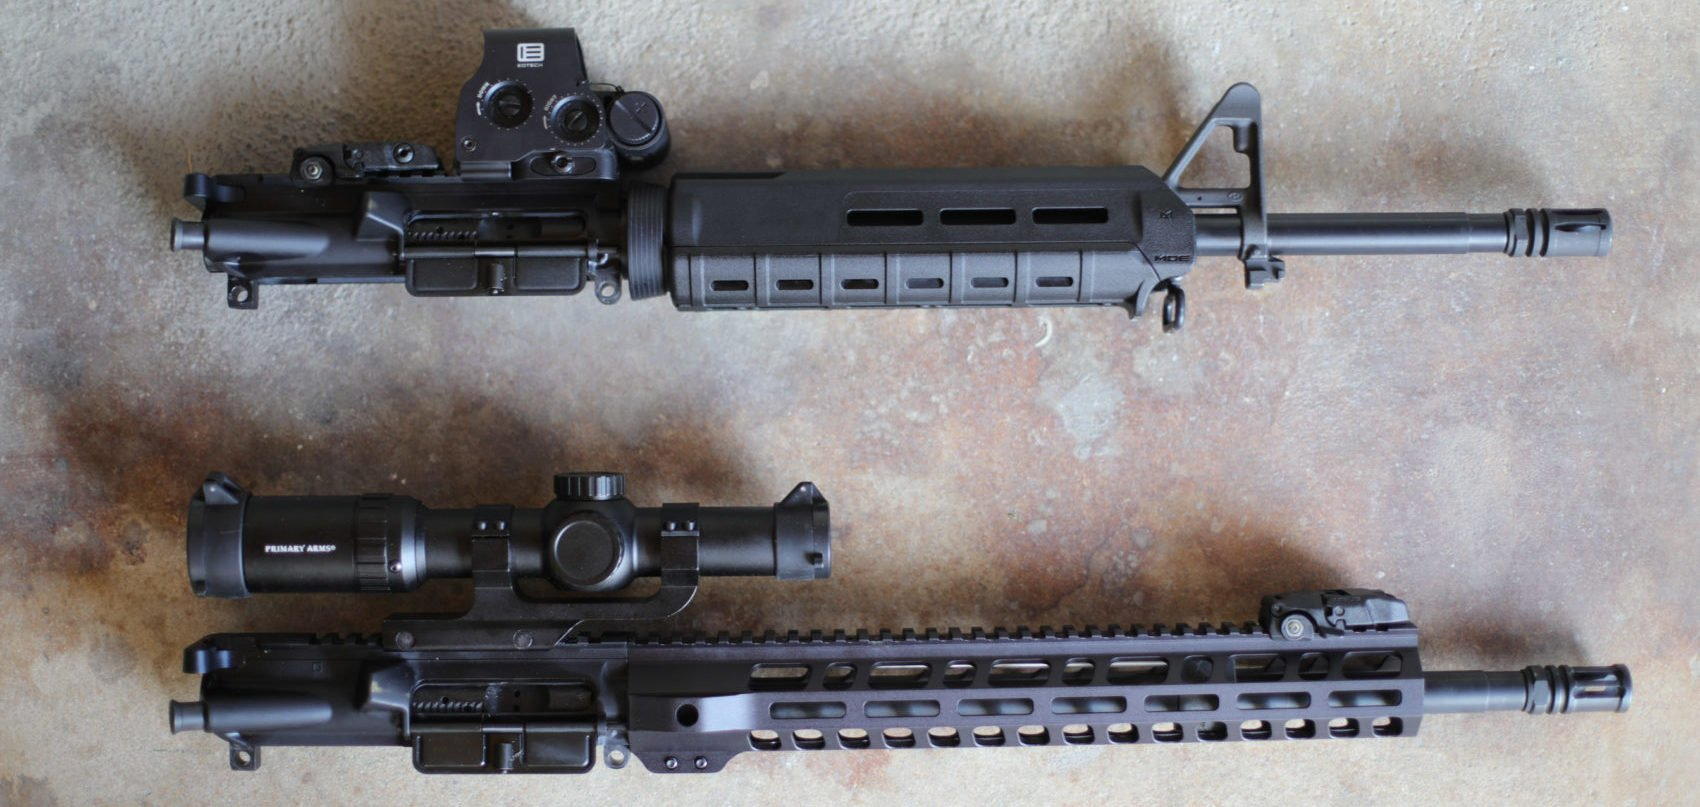 AR-15 Rifles [The Definitive Resource] - Pew Pew Tactical